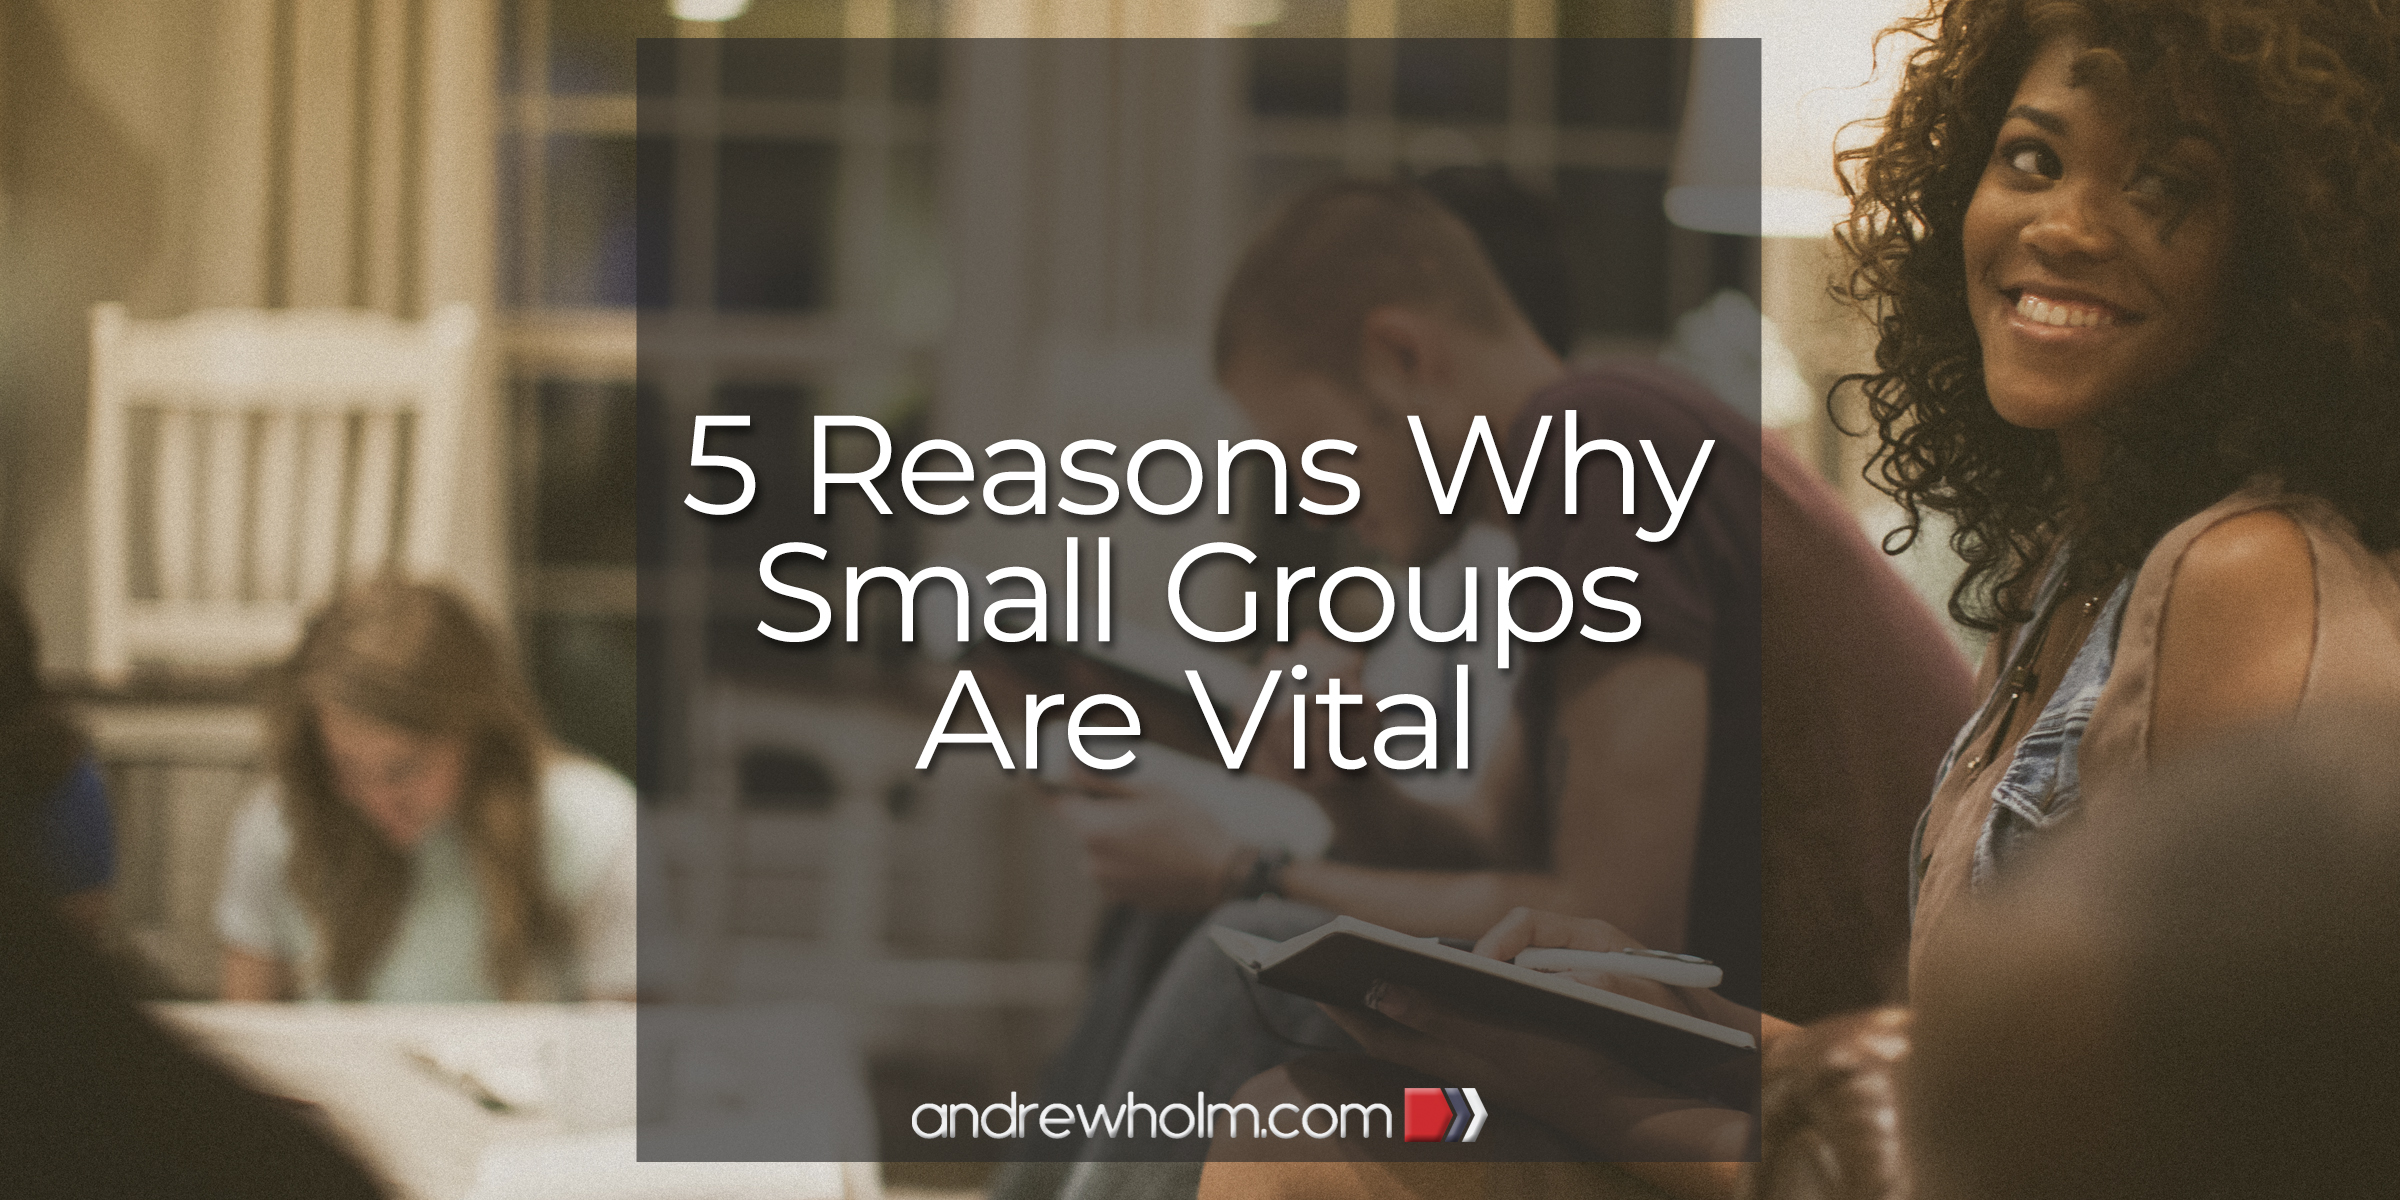 5 Reasons Why Small Groups Are Vital